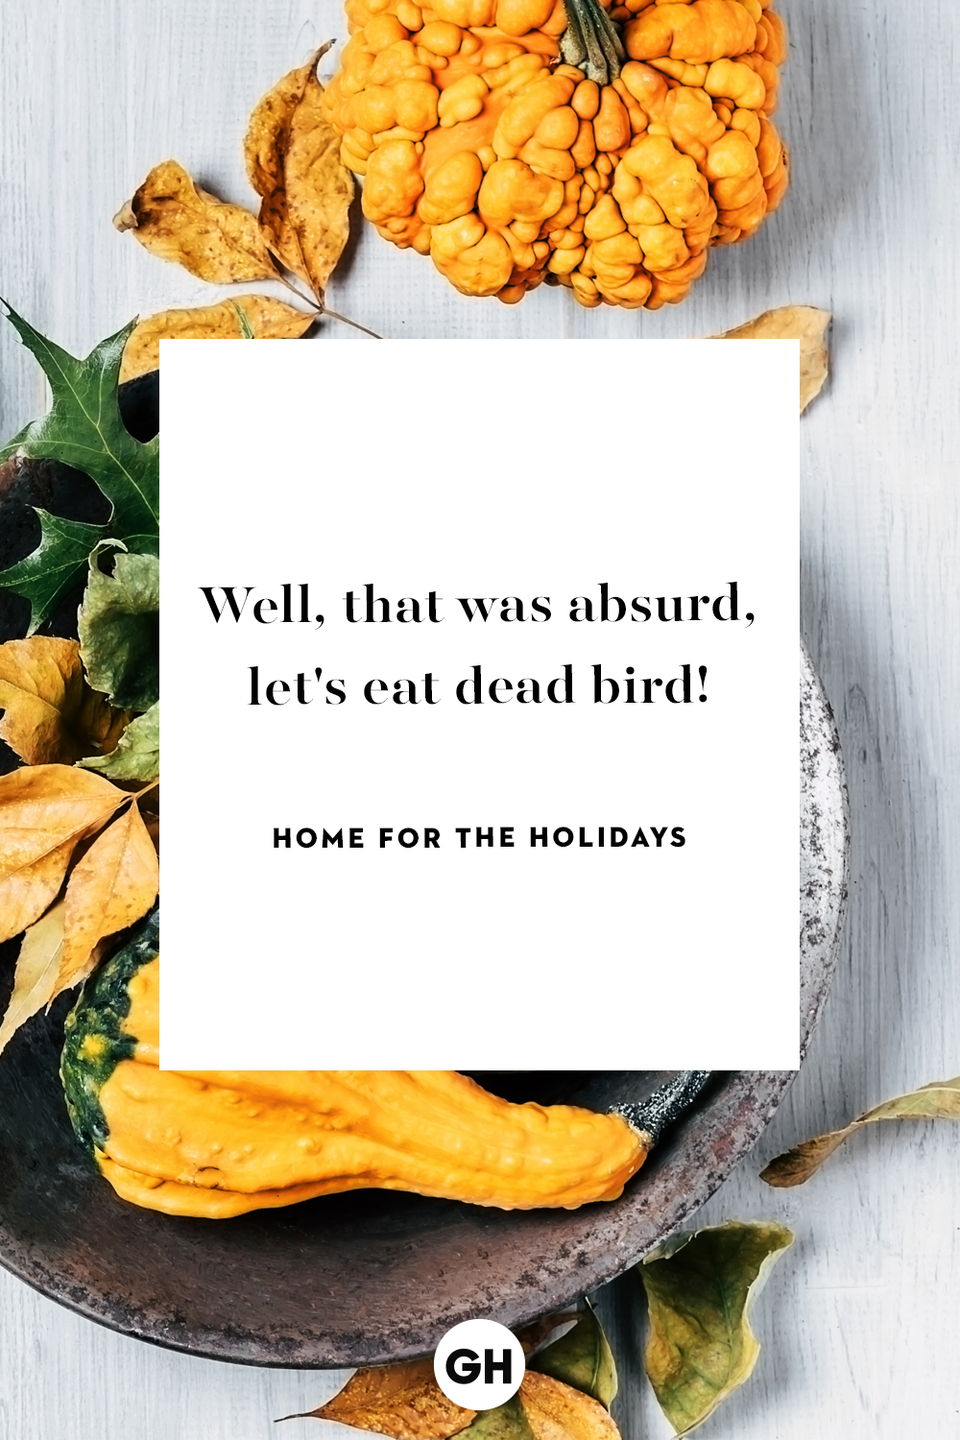 <p>Well, that was absurd, let's eat dead bird!</p>